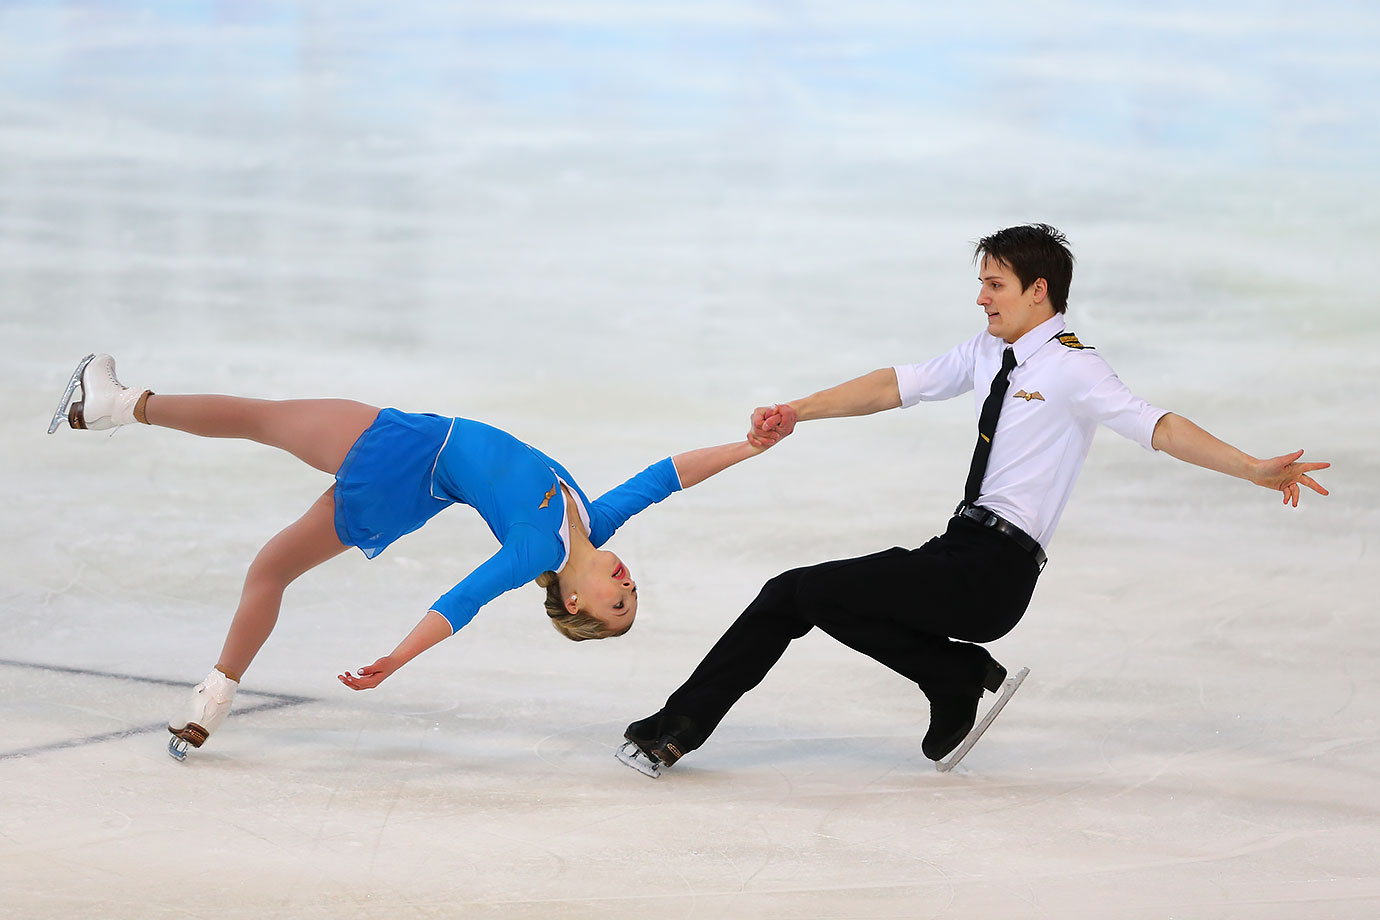 Sarah Rose and Joseph Goodpaster (USA) perform their Figure Skating Pairs Short Program at the Hamar Olympic Amphitheatre Storhamarhallen on Feb. 13, 2016 during the Winter Youth Olympic Games in Lillehammer, Norway.